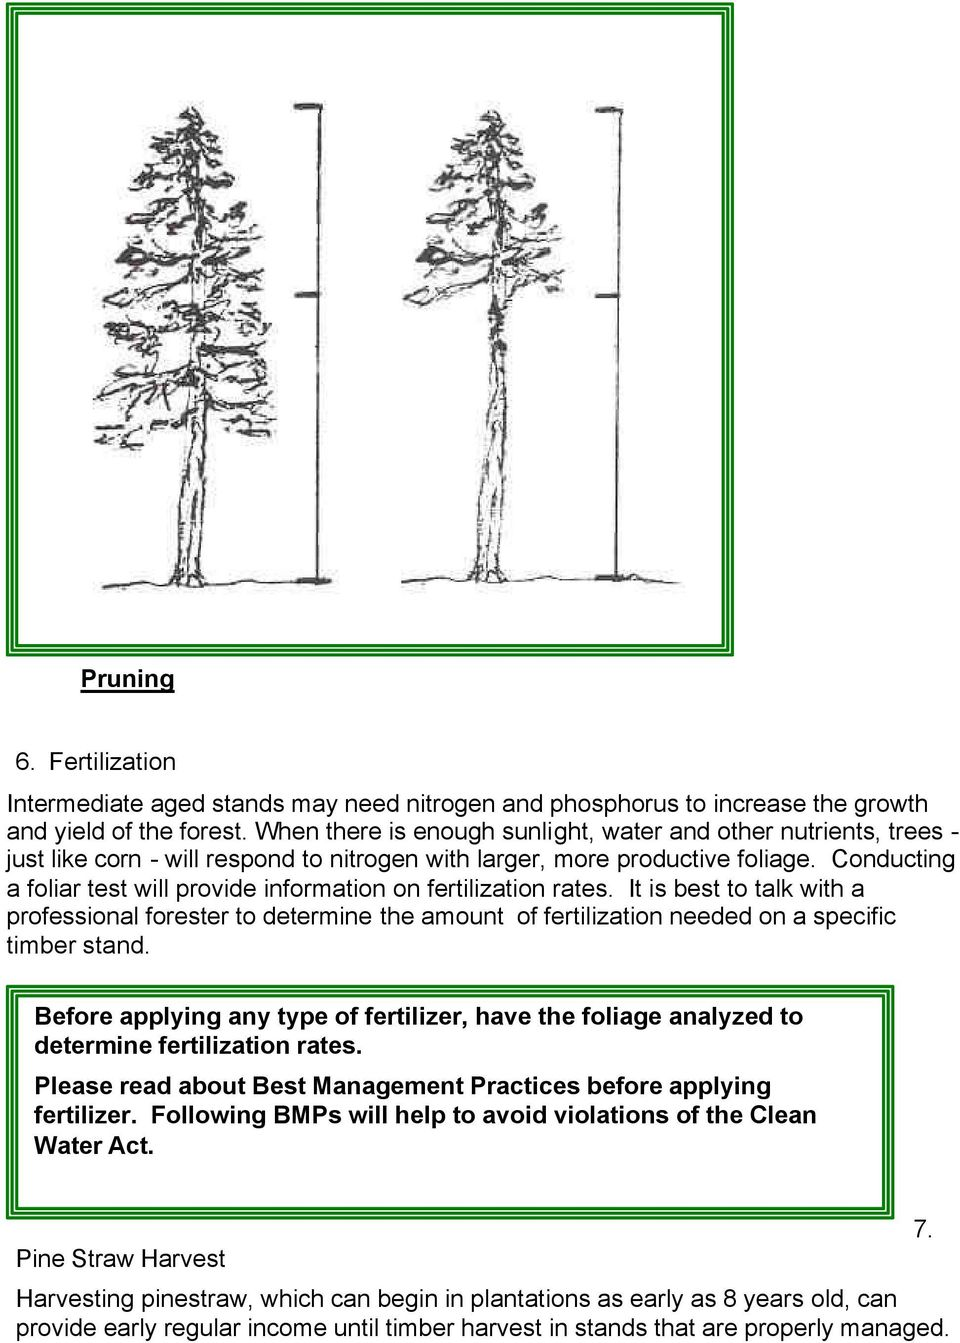 Conducting a foliar test will provide information on fertilization rates. It is best to talk with a professional forester to determine the amount of fertilization needed on a specific timber stand.